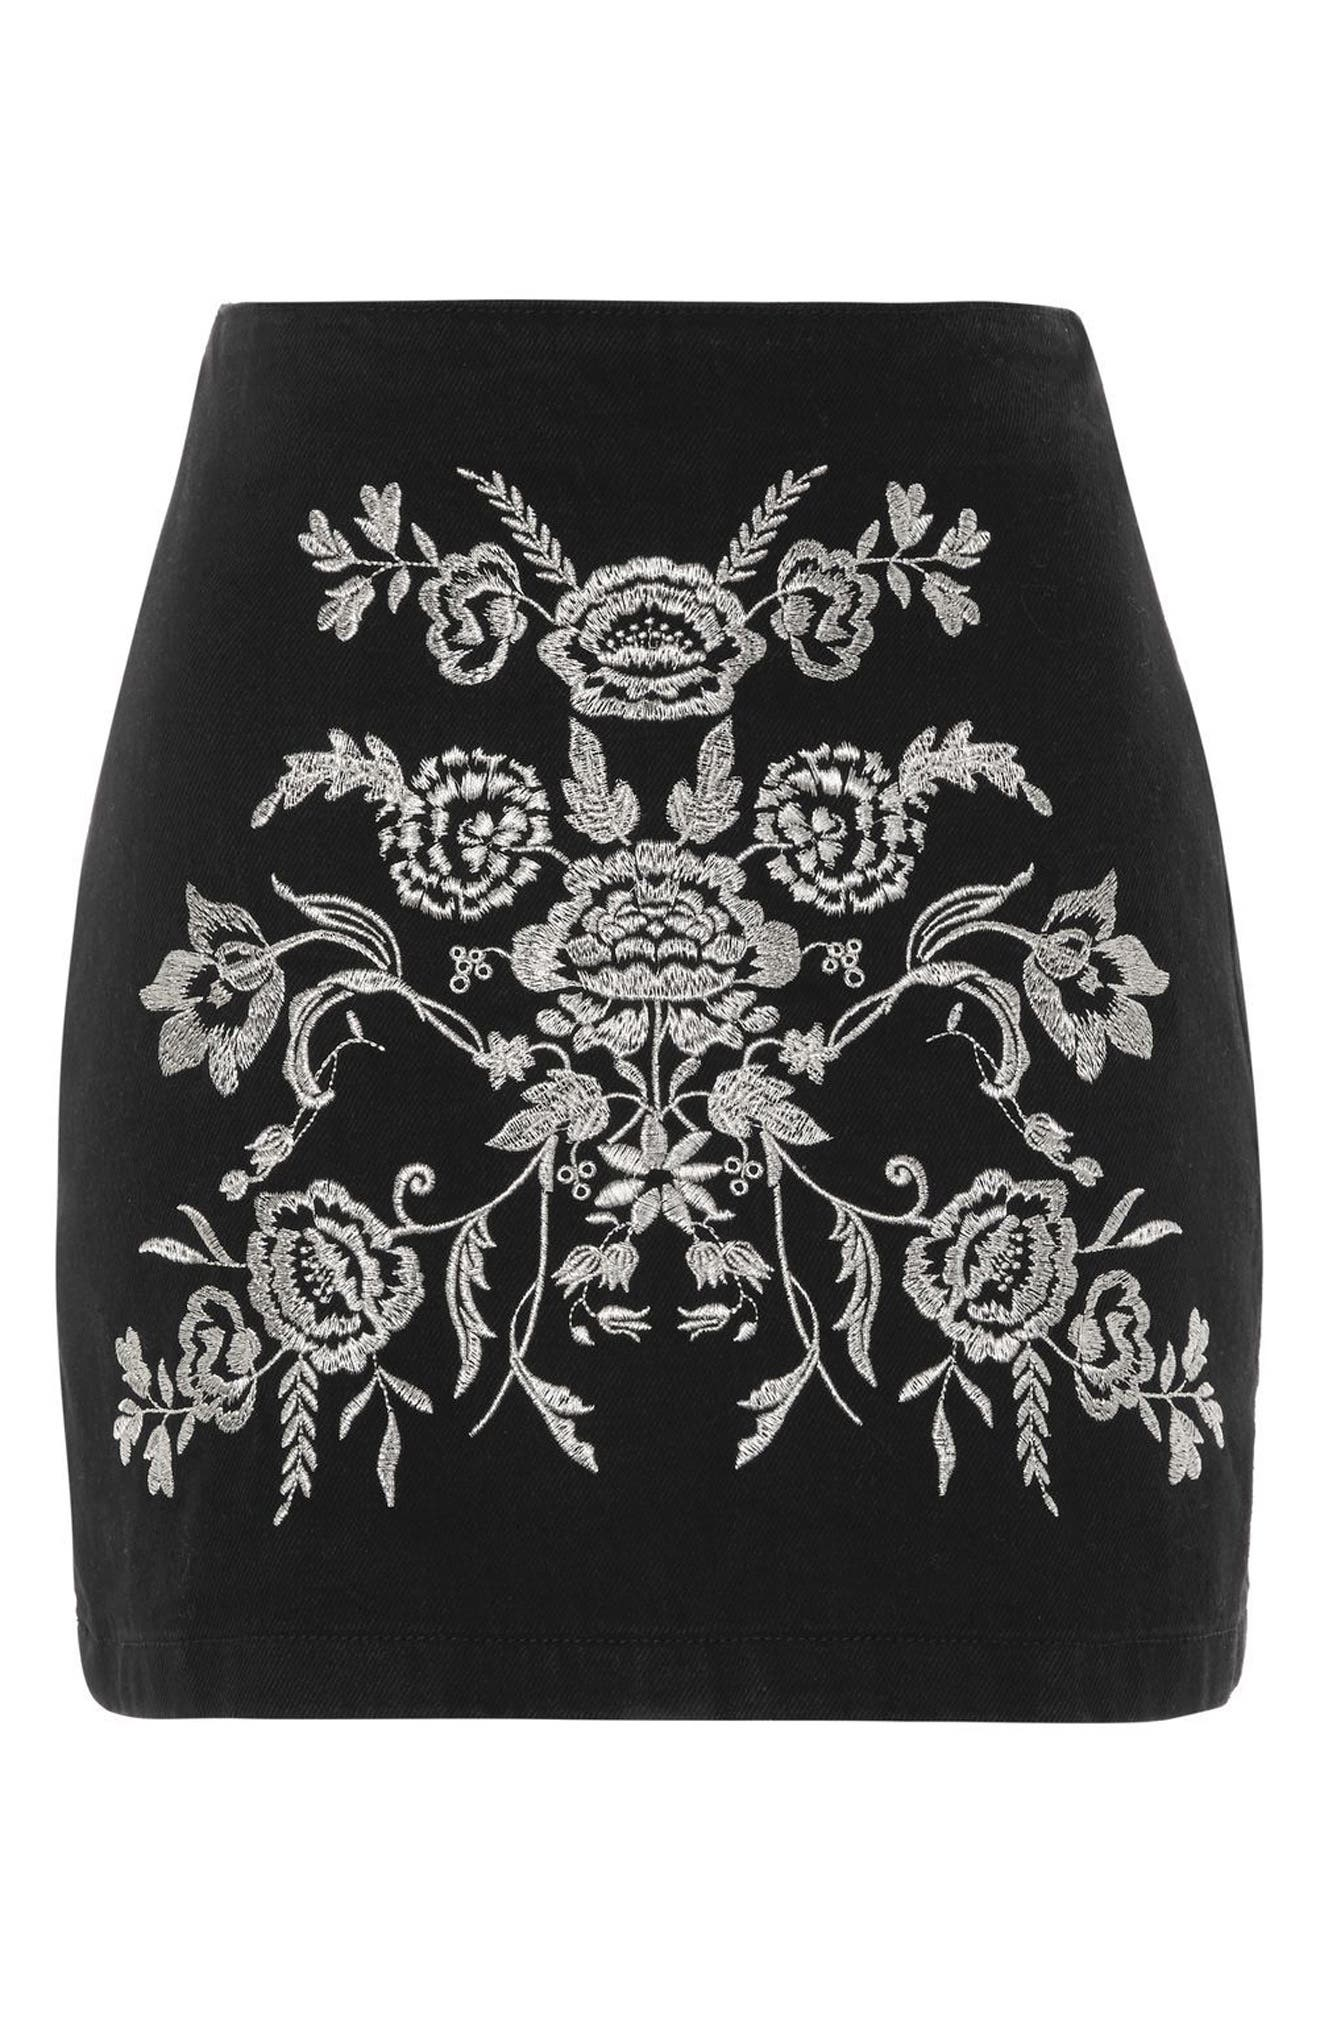 Floral Embroidered A-Line Skirt,                             Alternate thumbnail 3, color,                             001